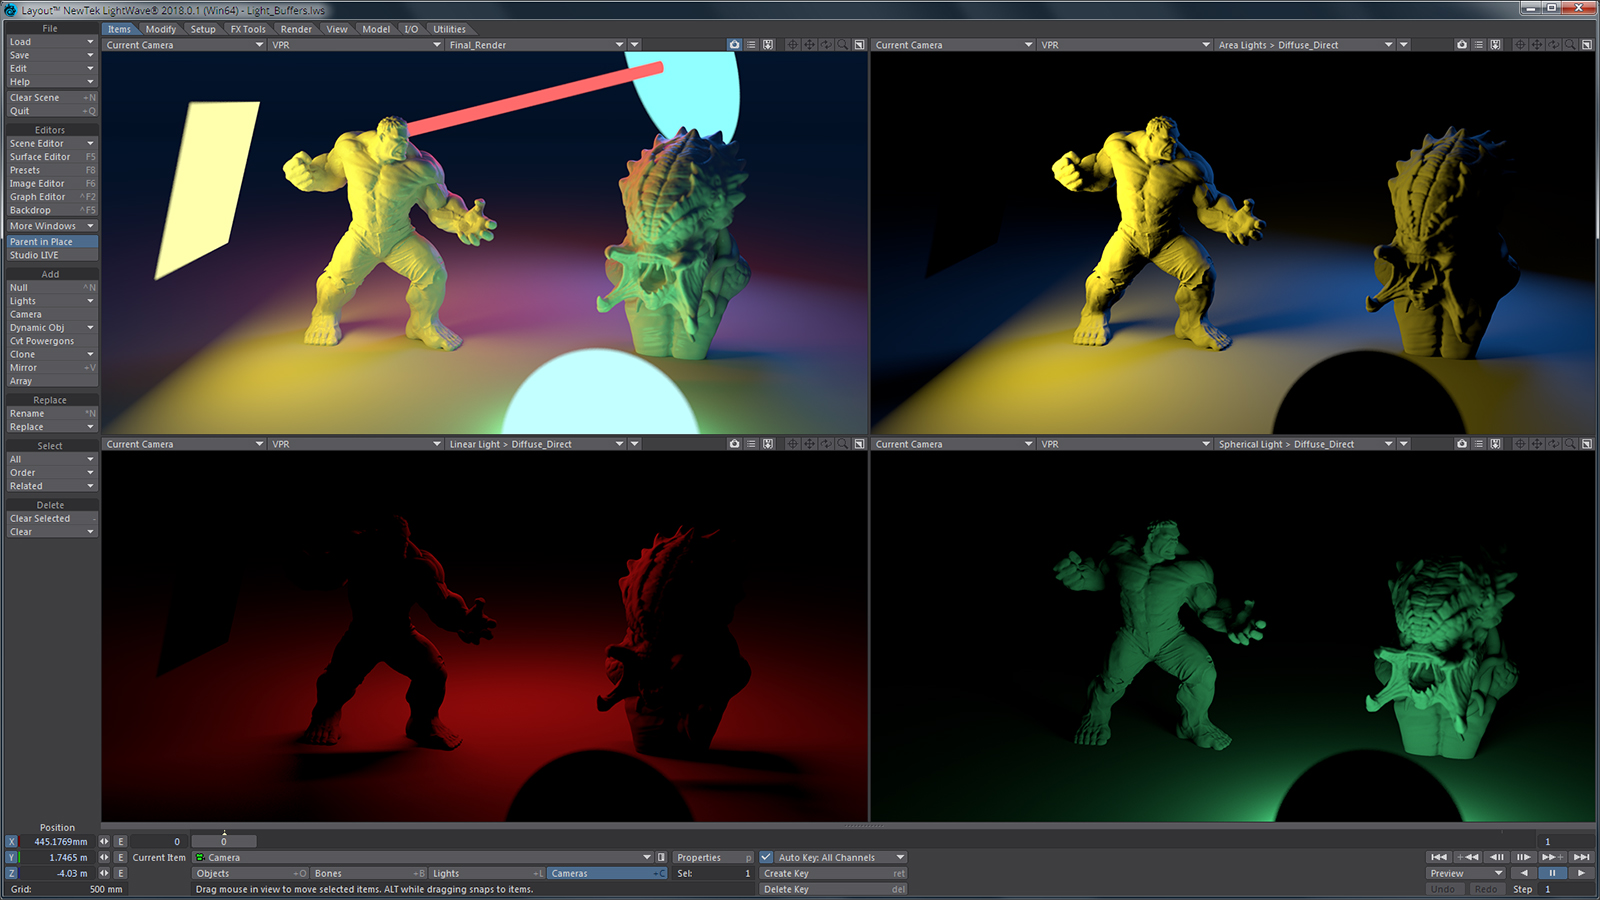 LightWave 2018, Award-Winning, Intuitive, Feature-Packed 3D Modeling